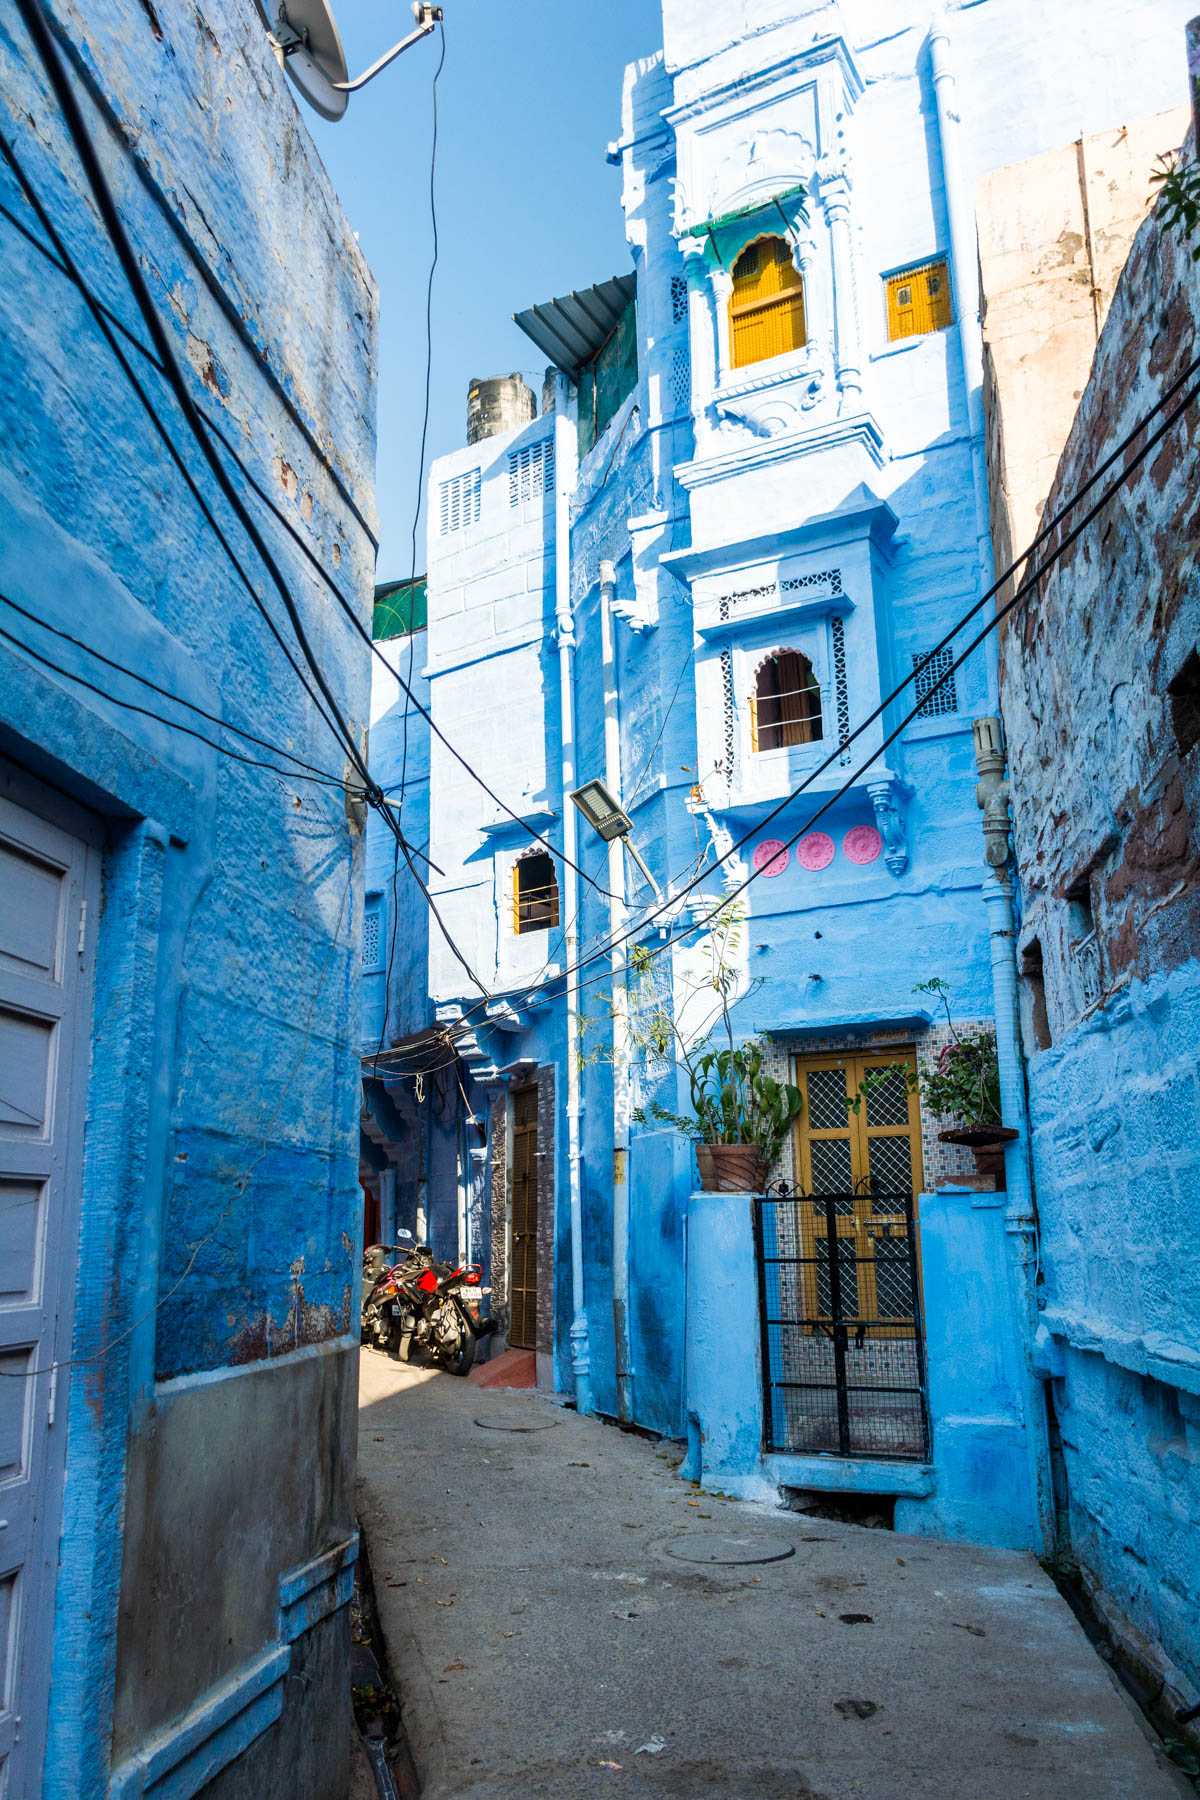 A very blue alley way in the blue city of Jodhpur in Rajasthan state, India